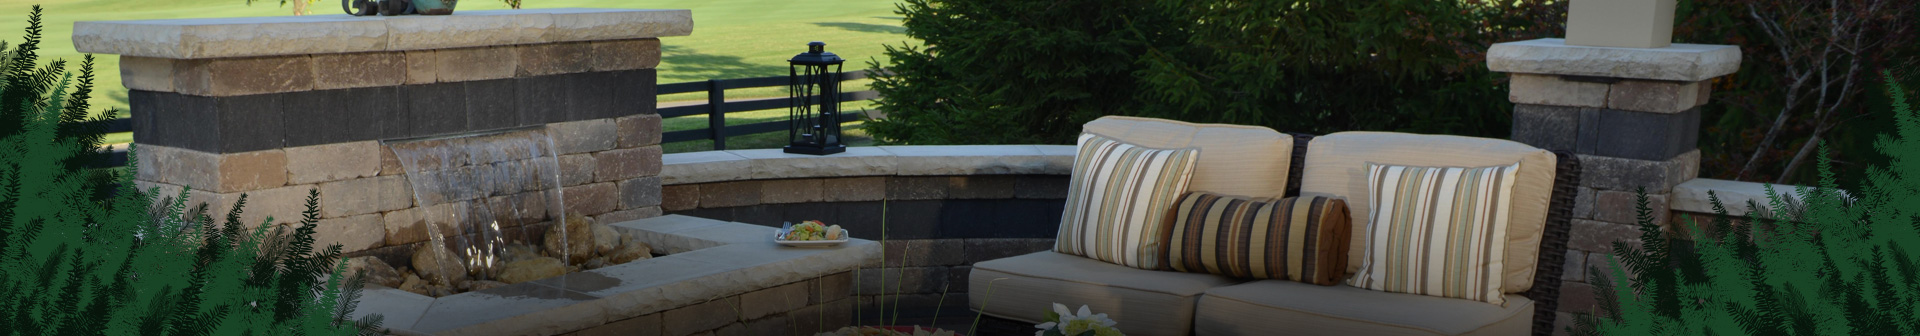 Outdoor living spaces for parties and daily living in Franklin, Wi